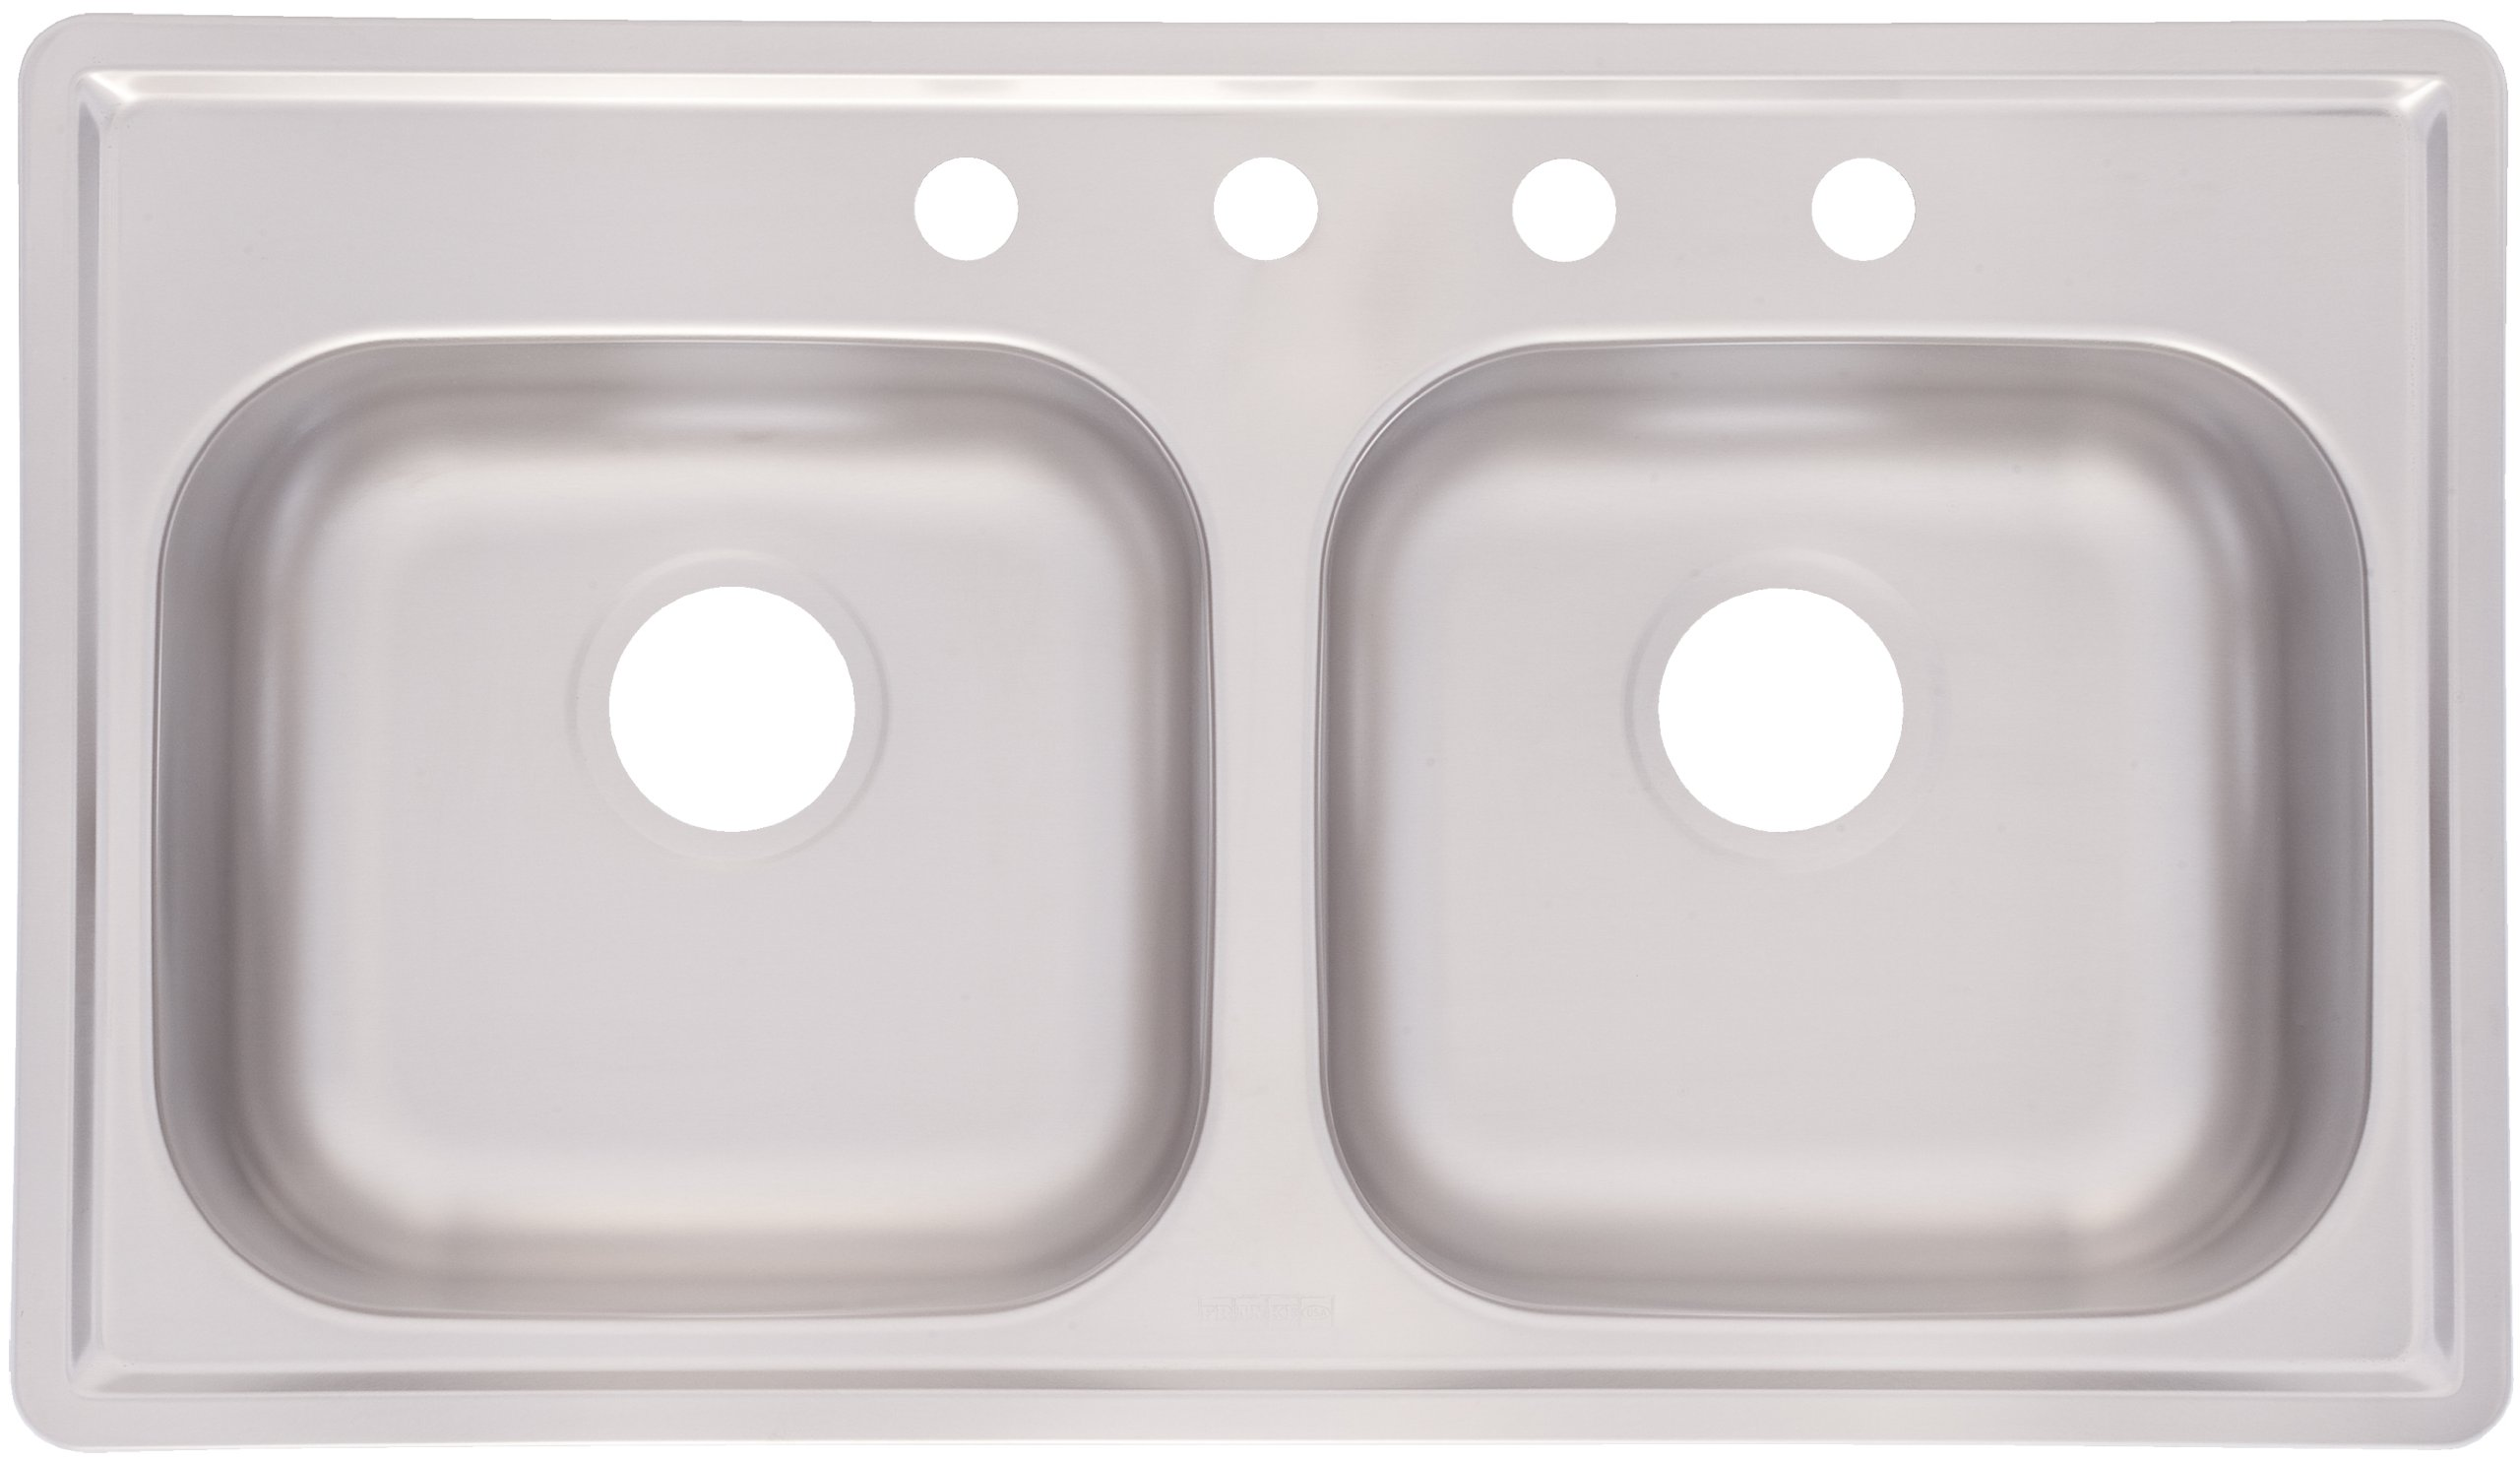 Kindred FMSB654NB Double Bowl Stainless Steel 33 x 19-Inch Top-mount Sink